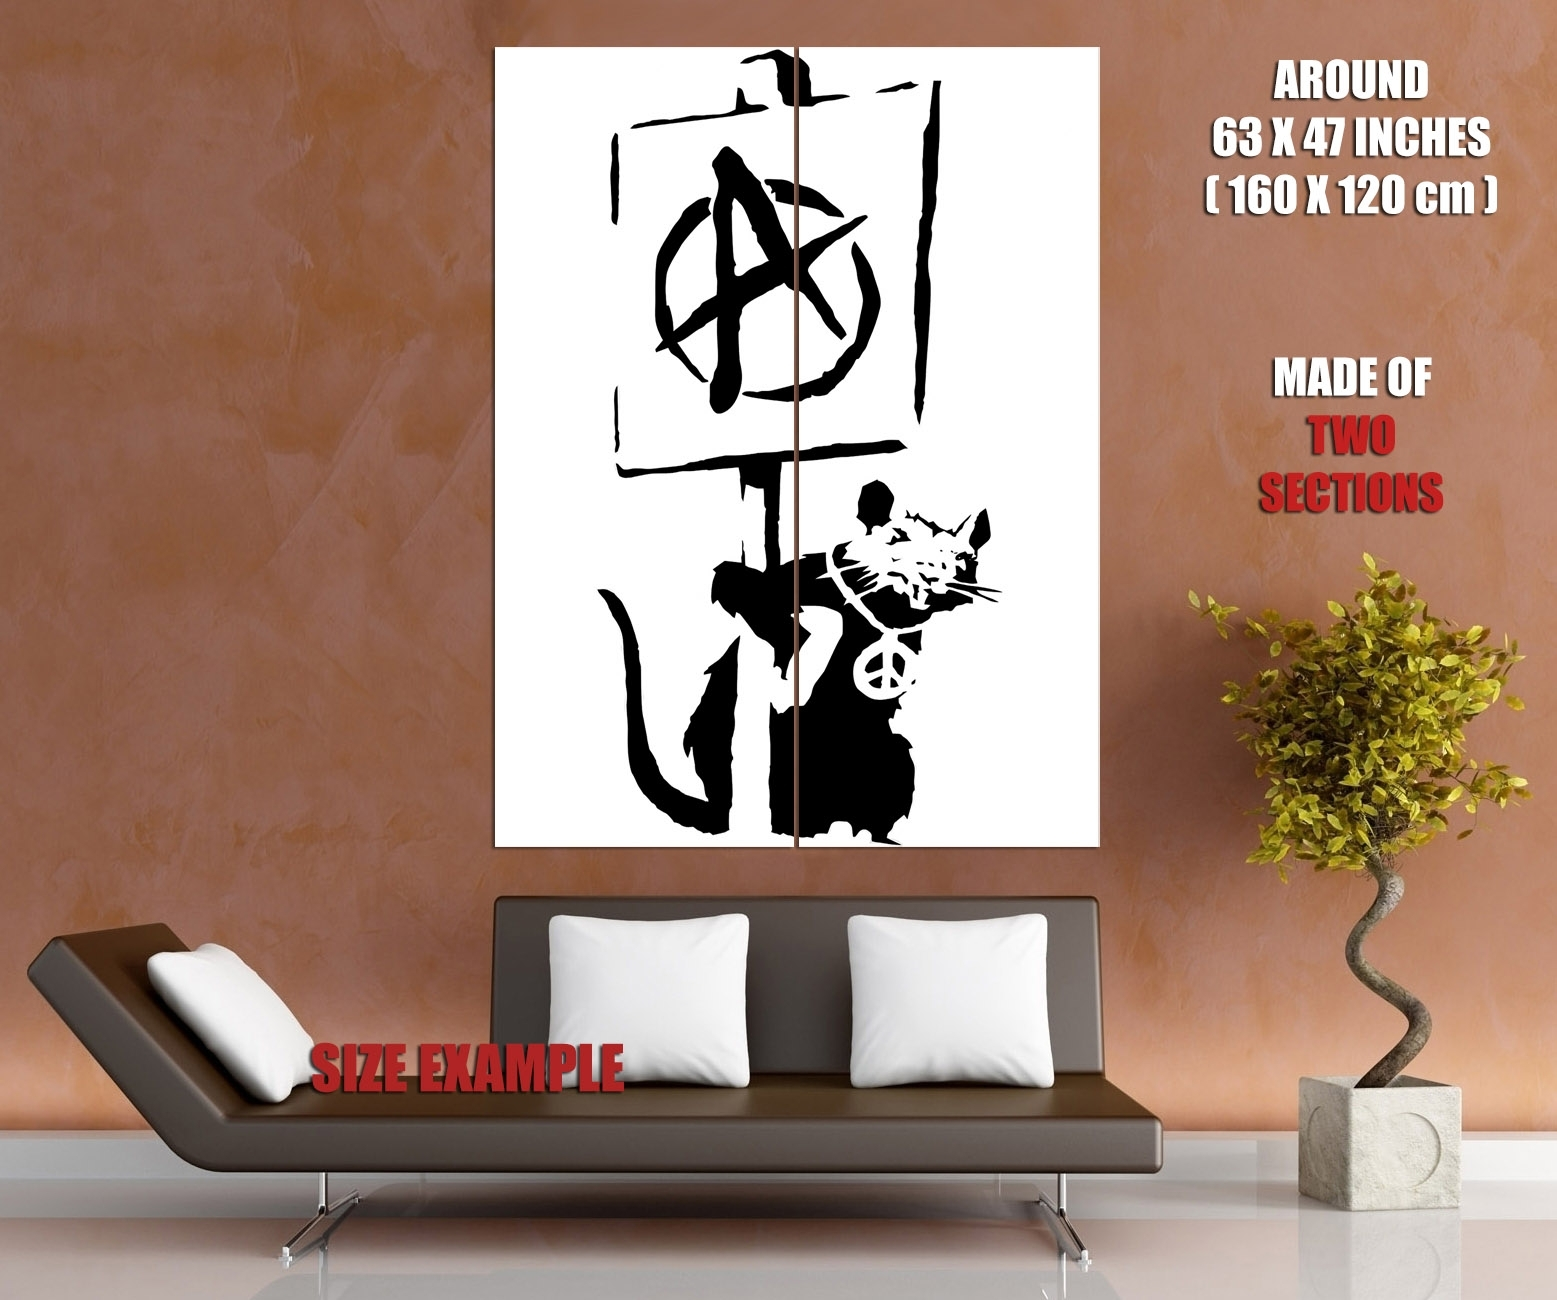 Banksy Rat Anarchy Pacifism Cool Graffiti Art Huge Giant Wall Print Pertaining To Most Recent Giant Wall Art (View 16 of 20)